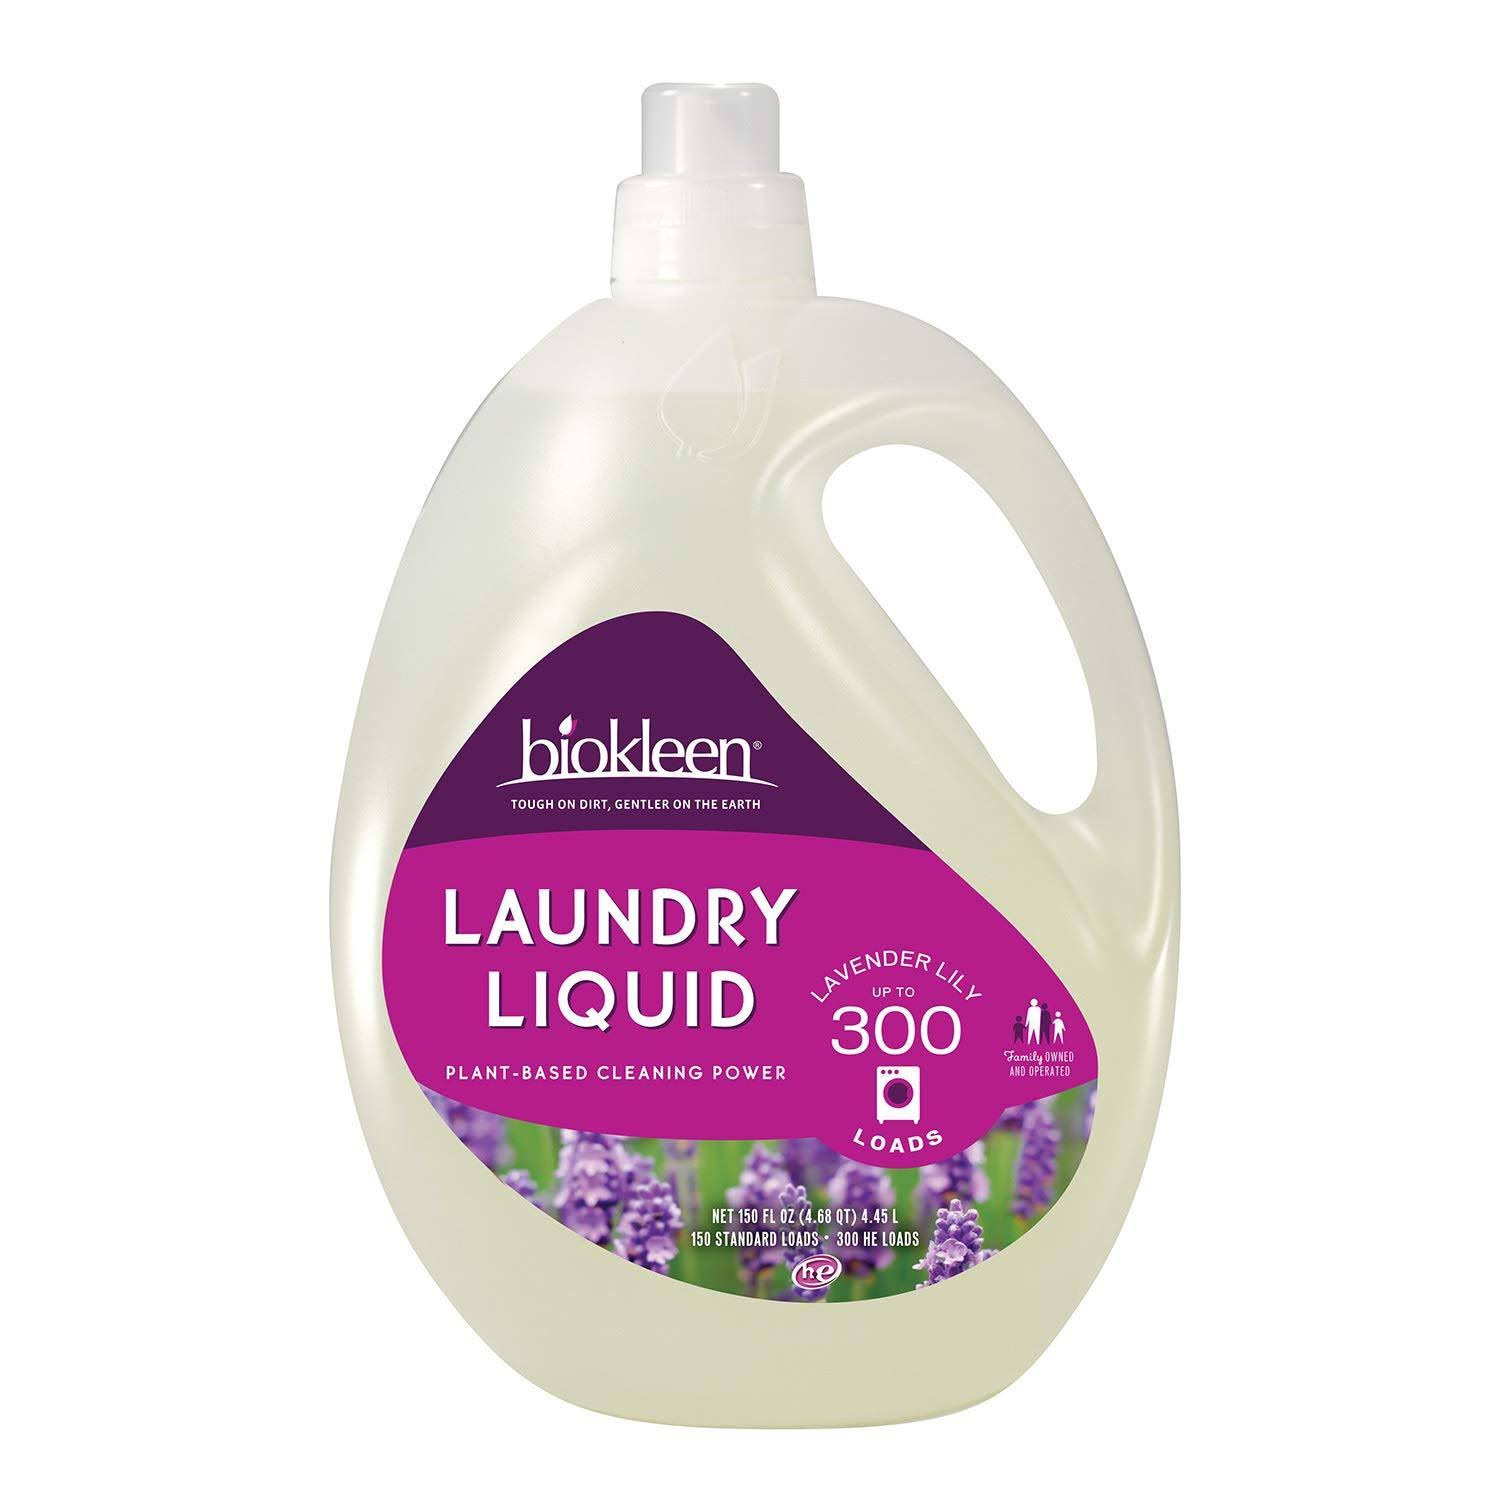 Biokleen Laundry Detergent Liquid Eco Friendly